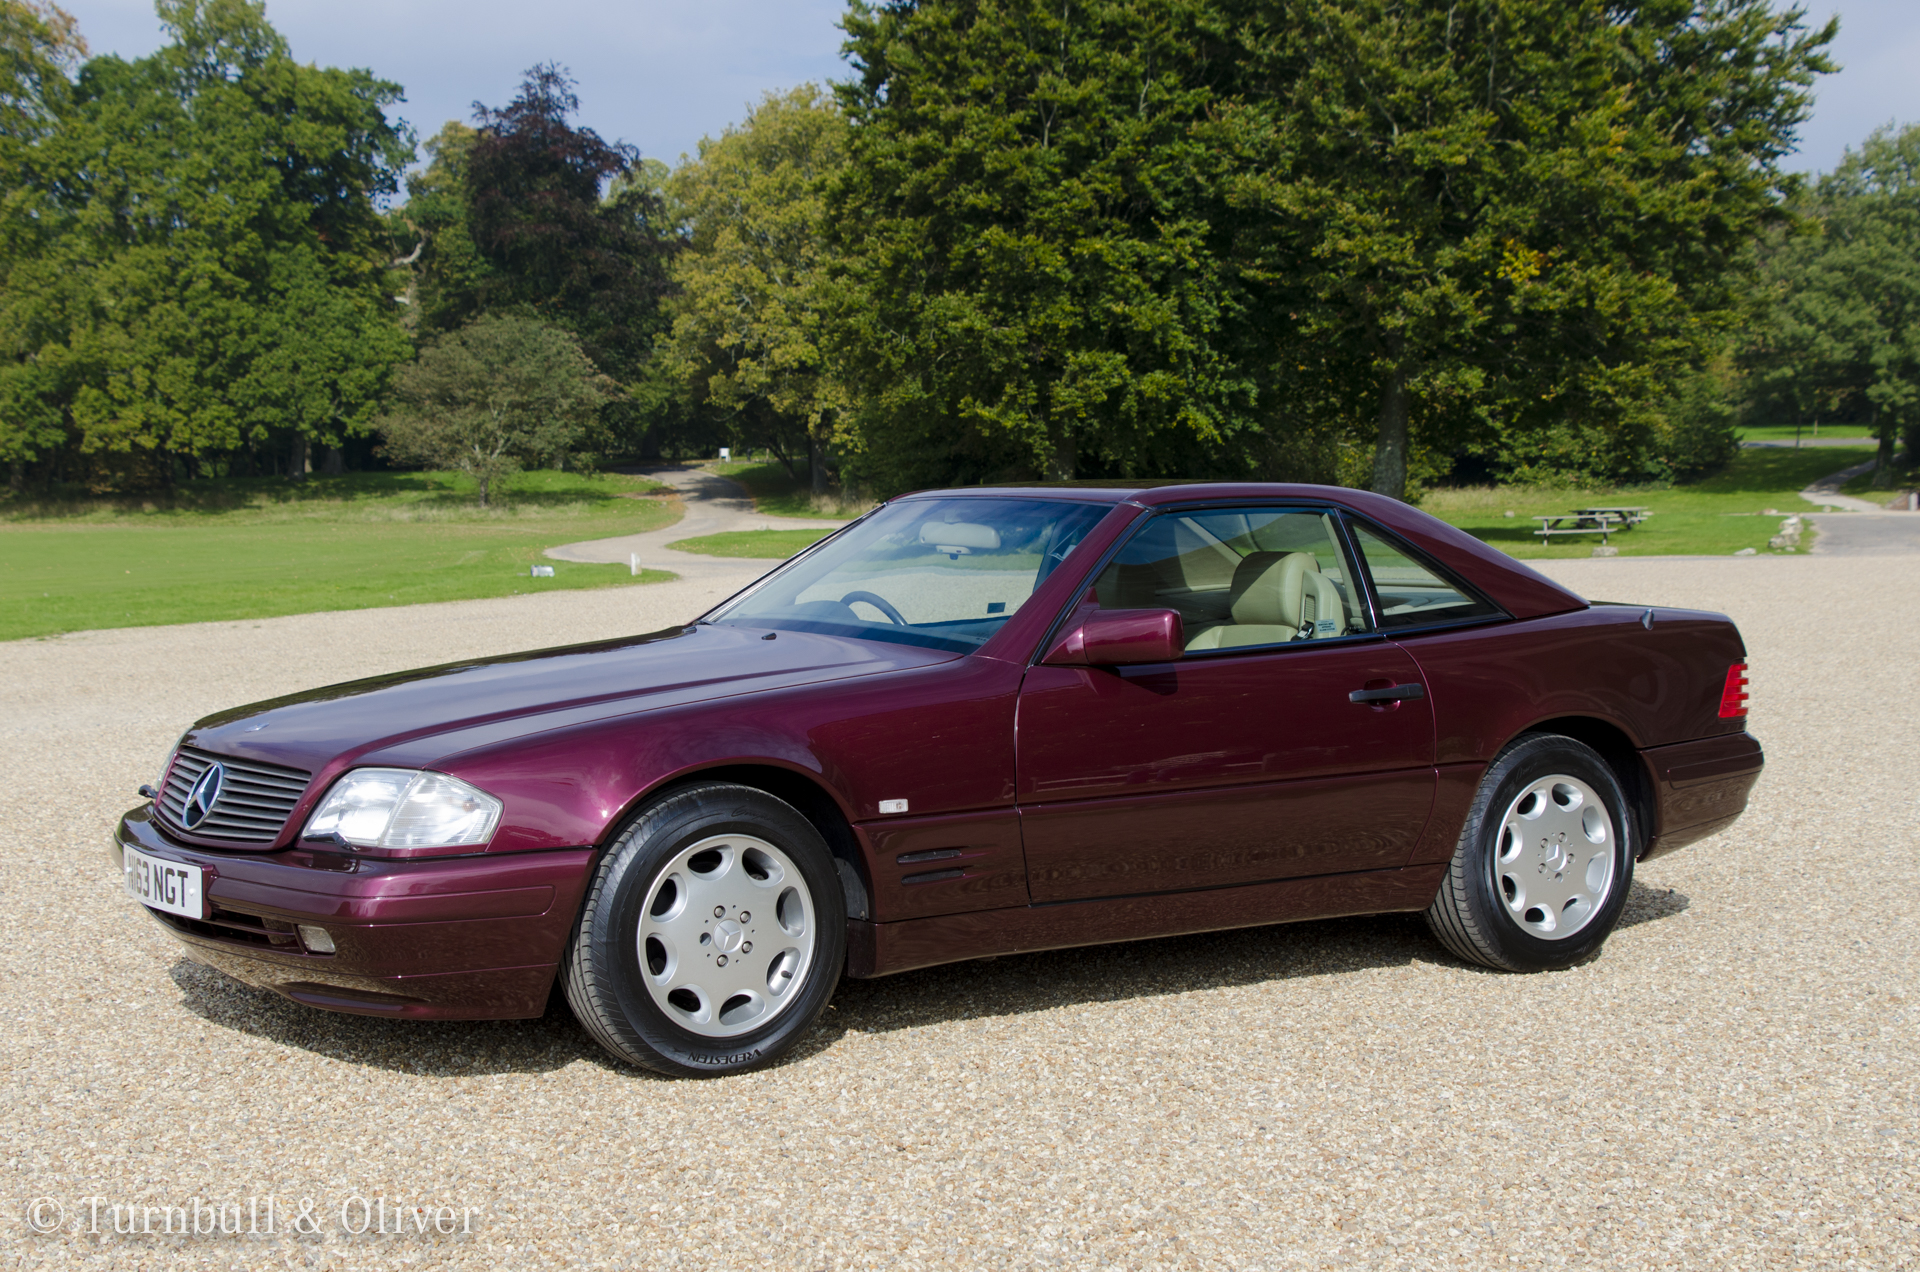 Mercedes benz sl320 beautiful burgundy turnbull oliver for Used mercedes benz cars for sale